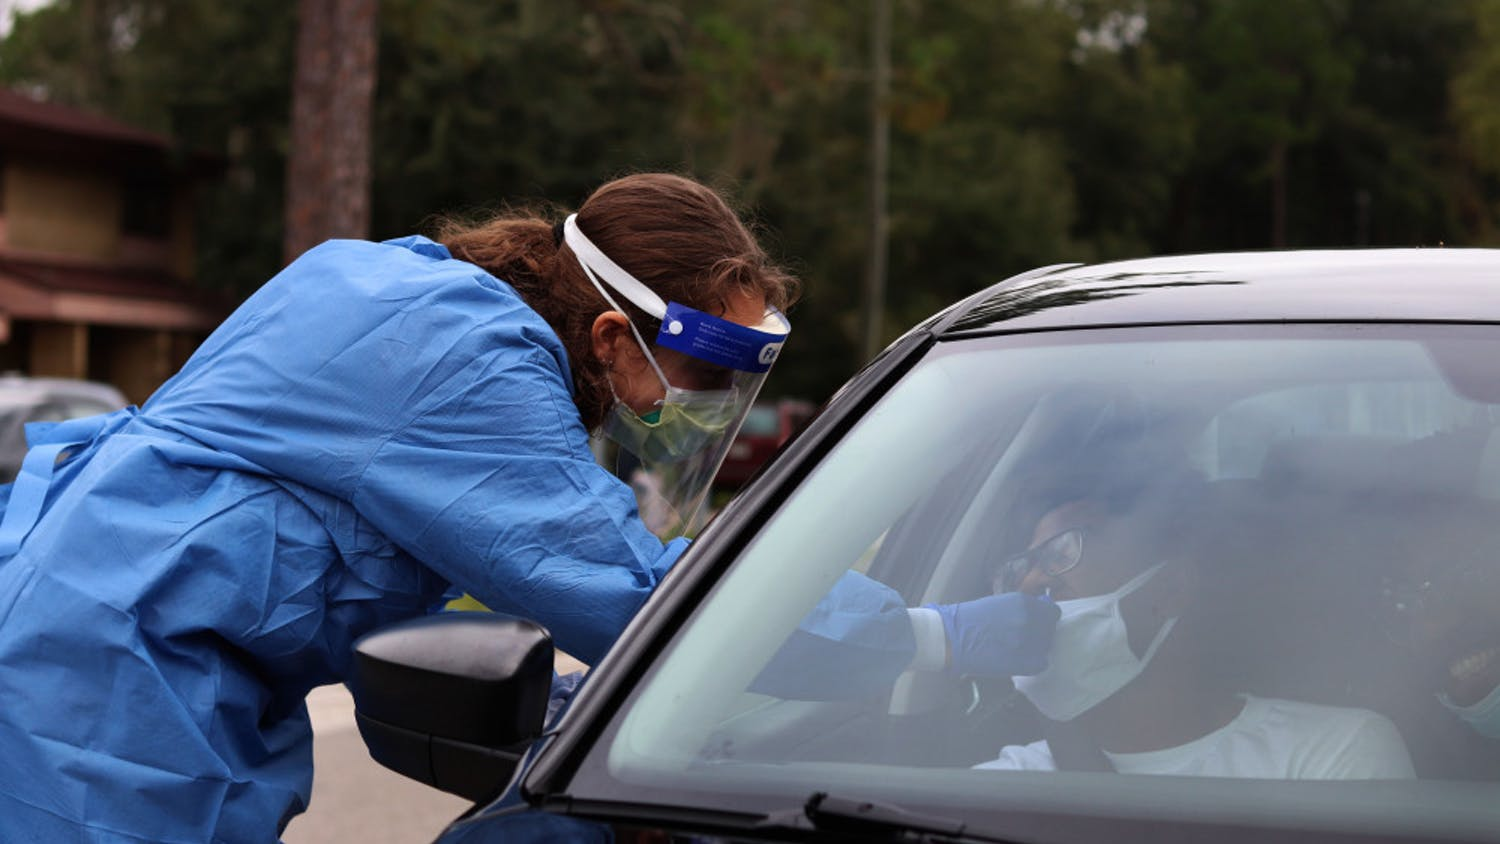 Hannah Lyons, 22, a UF first-year medical student, swabs a patient in the drive-through line in Gainesville, Fla., on Saturday, Sept. 19, 2020. UF Community Health and Family Medicine, SW Advocacy Group and the Alachua County Health Department teamed up to organize this free-testing event from 9a.m. - 1p.m. (Lauren Witte/Alligator Staff)